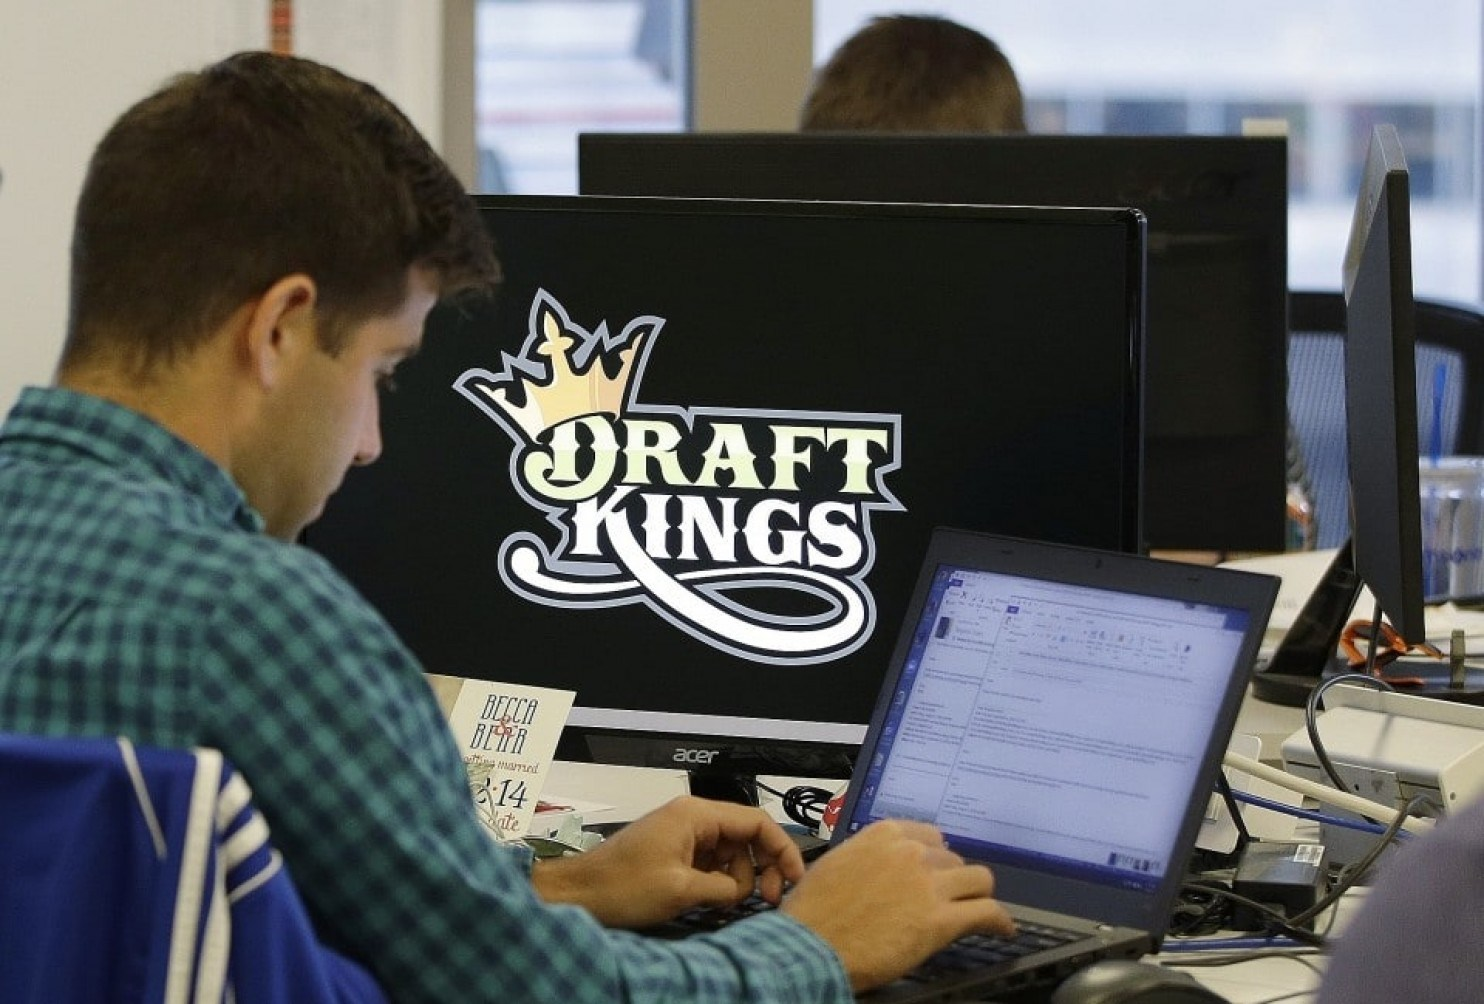 draft kings_1540440332479.jpg.jpg